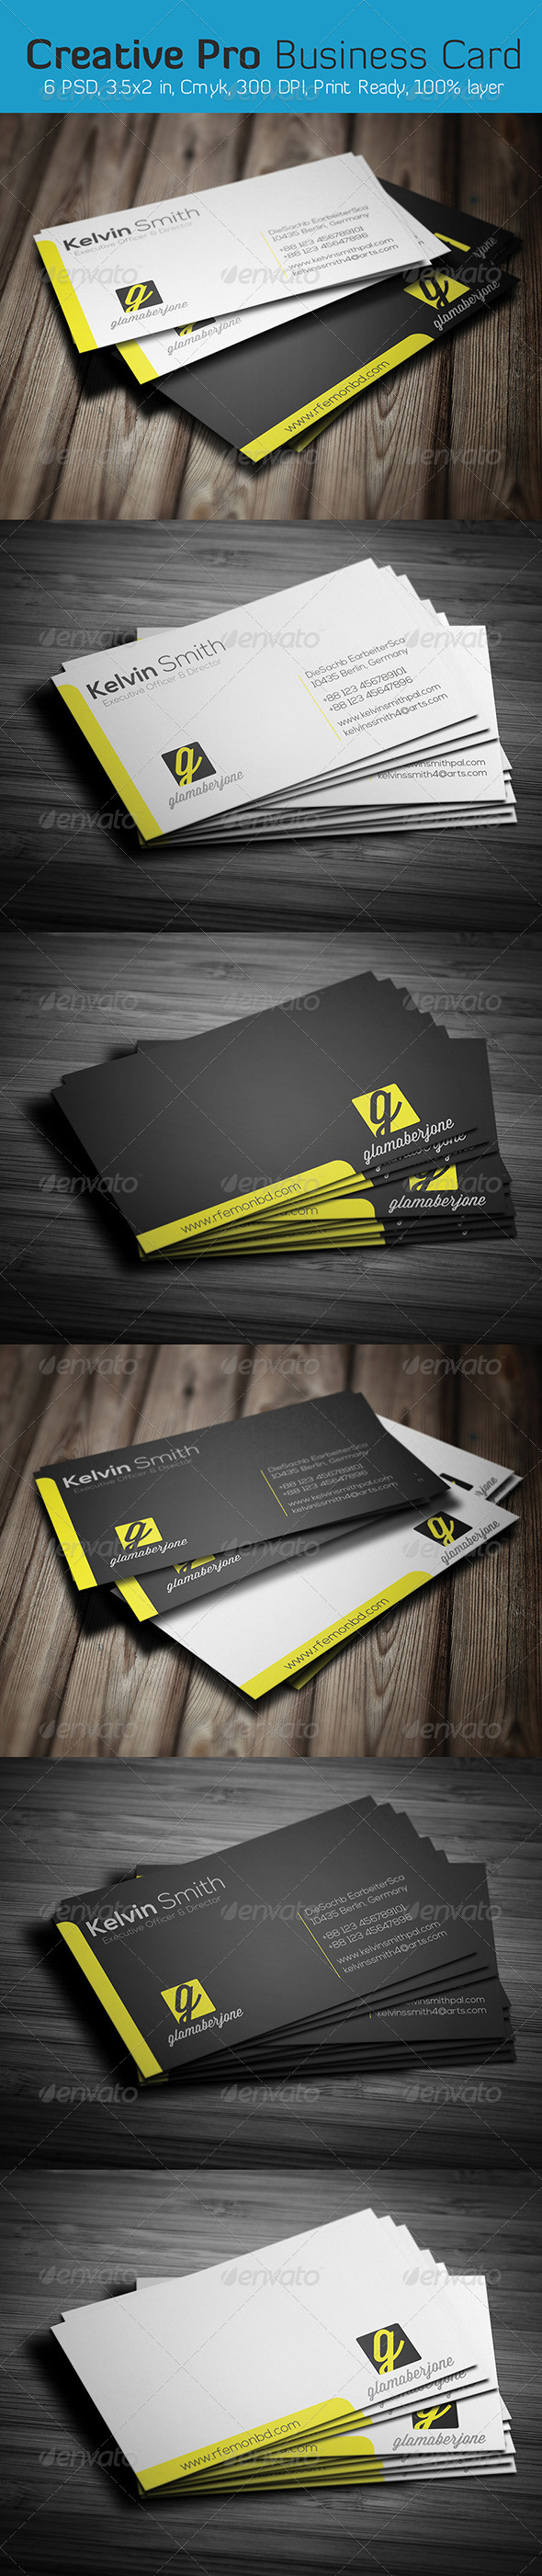 GraphicRiver Creative Pro Business Card 6425386